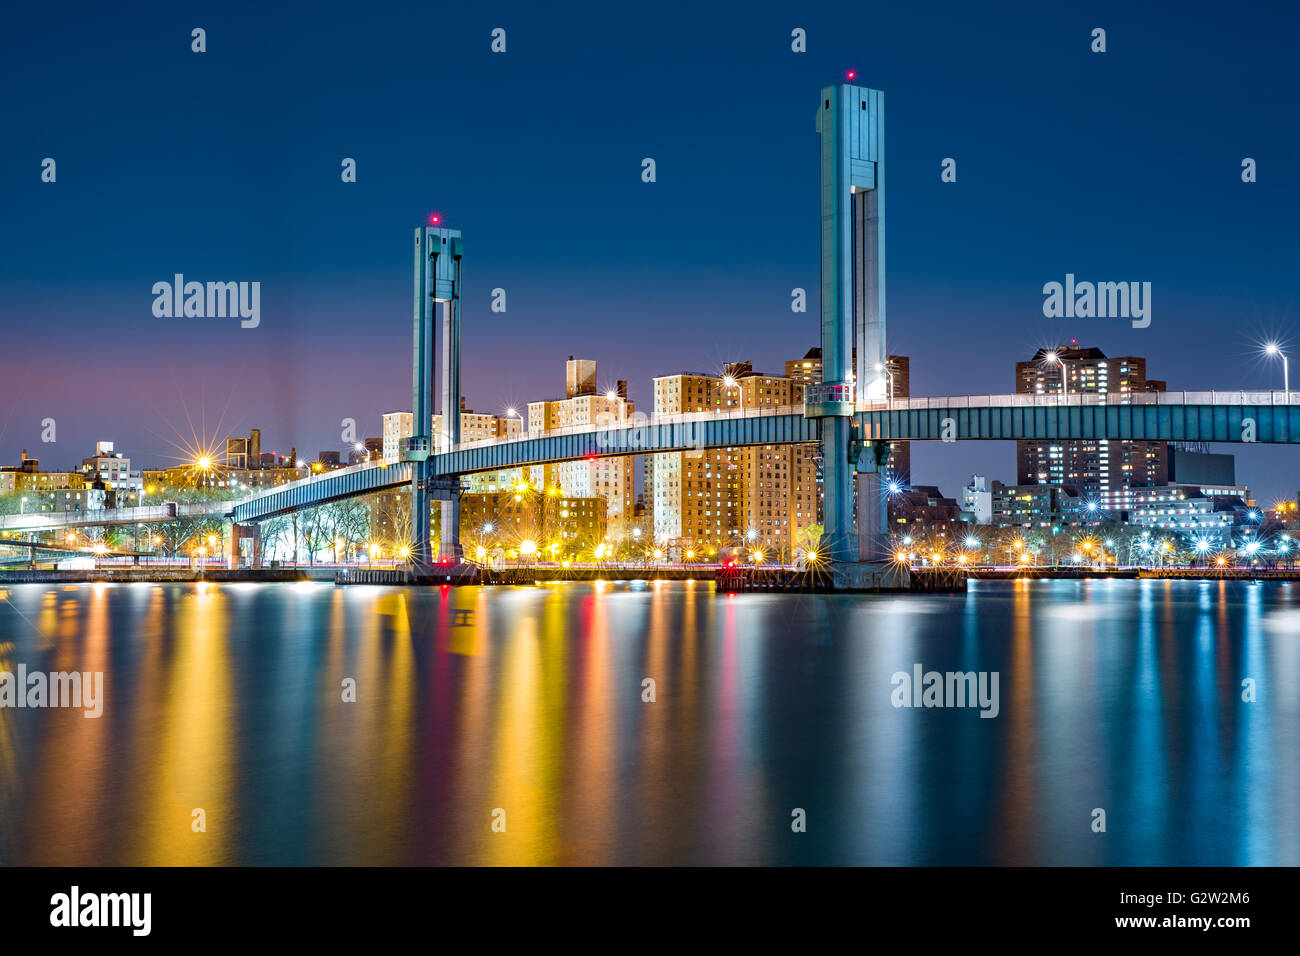 Wards Island pedestrian bridge crosses the Harlem River between Manhattan Island and Wards Island in New York City - Stock Image